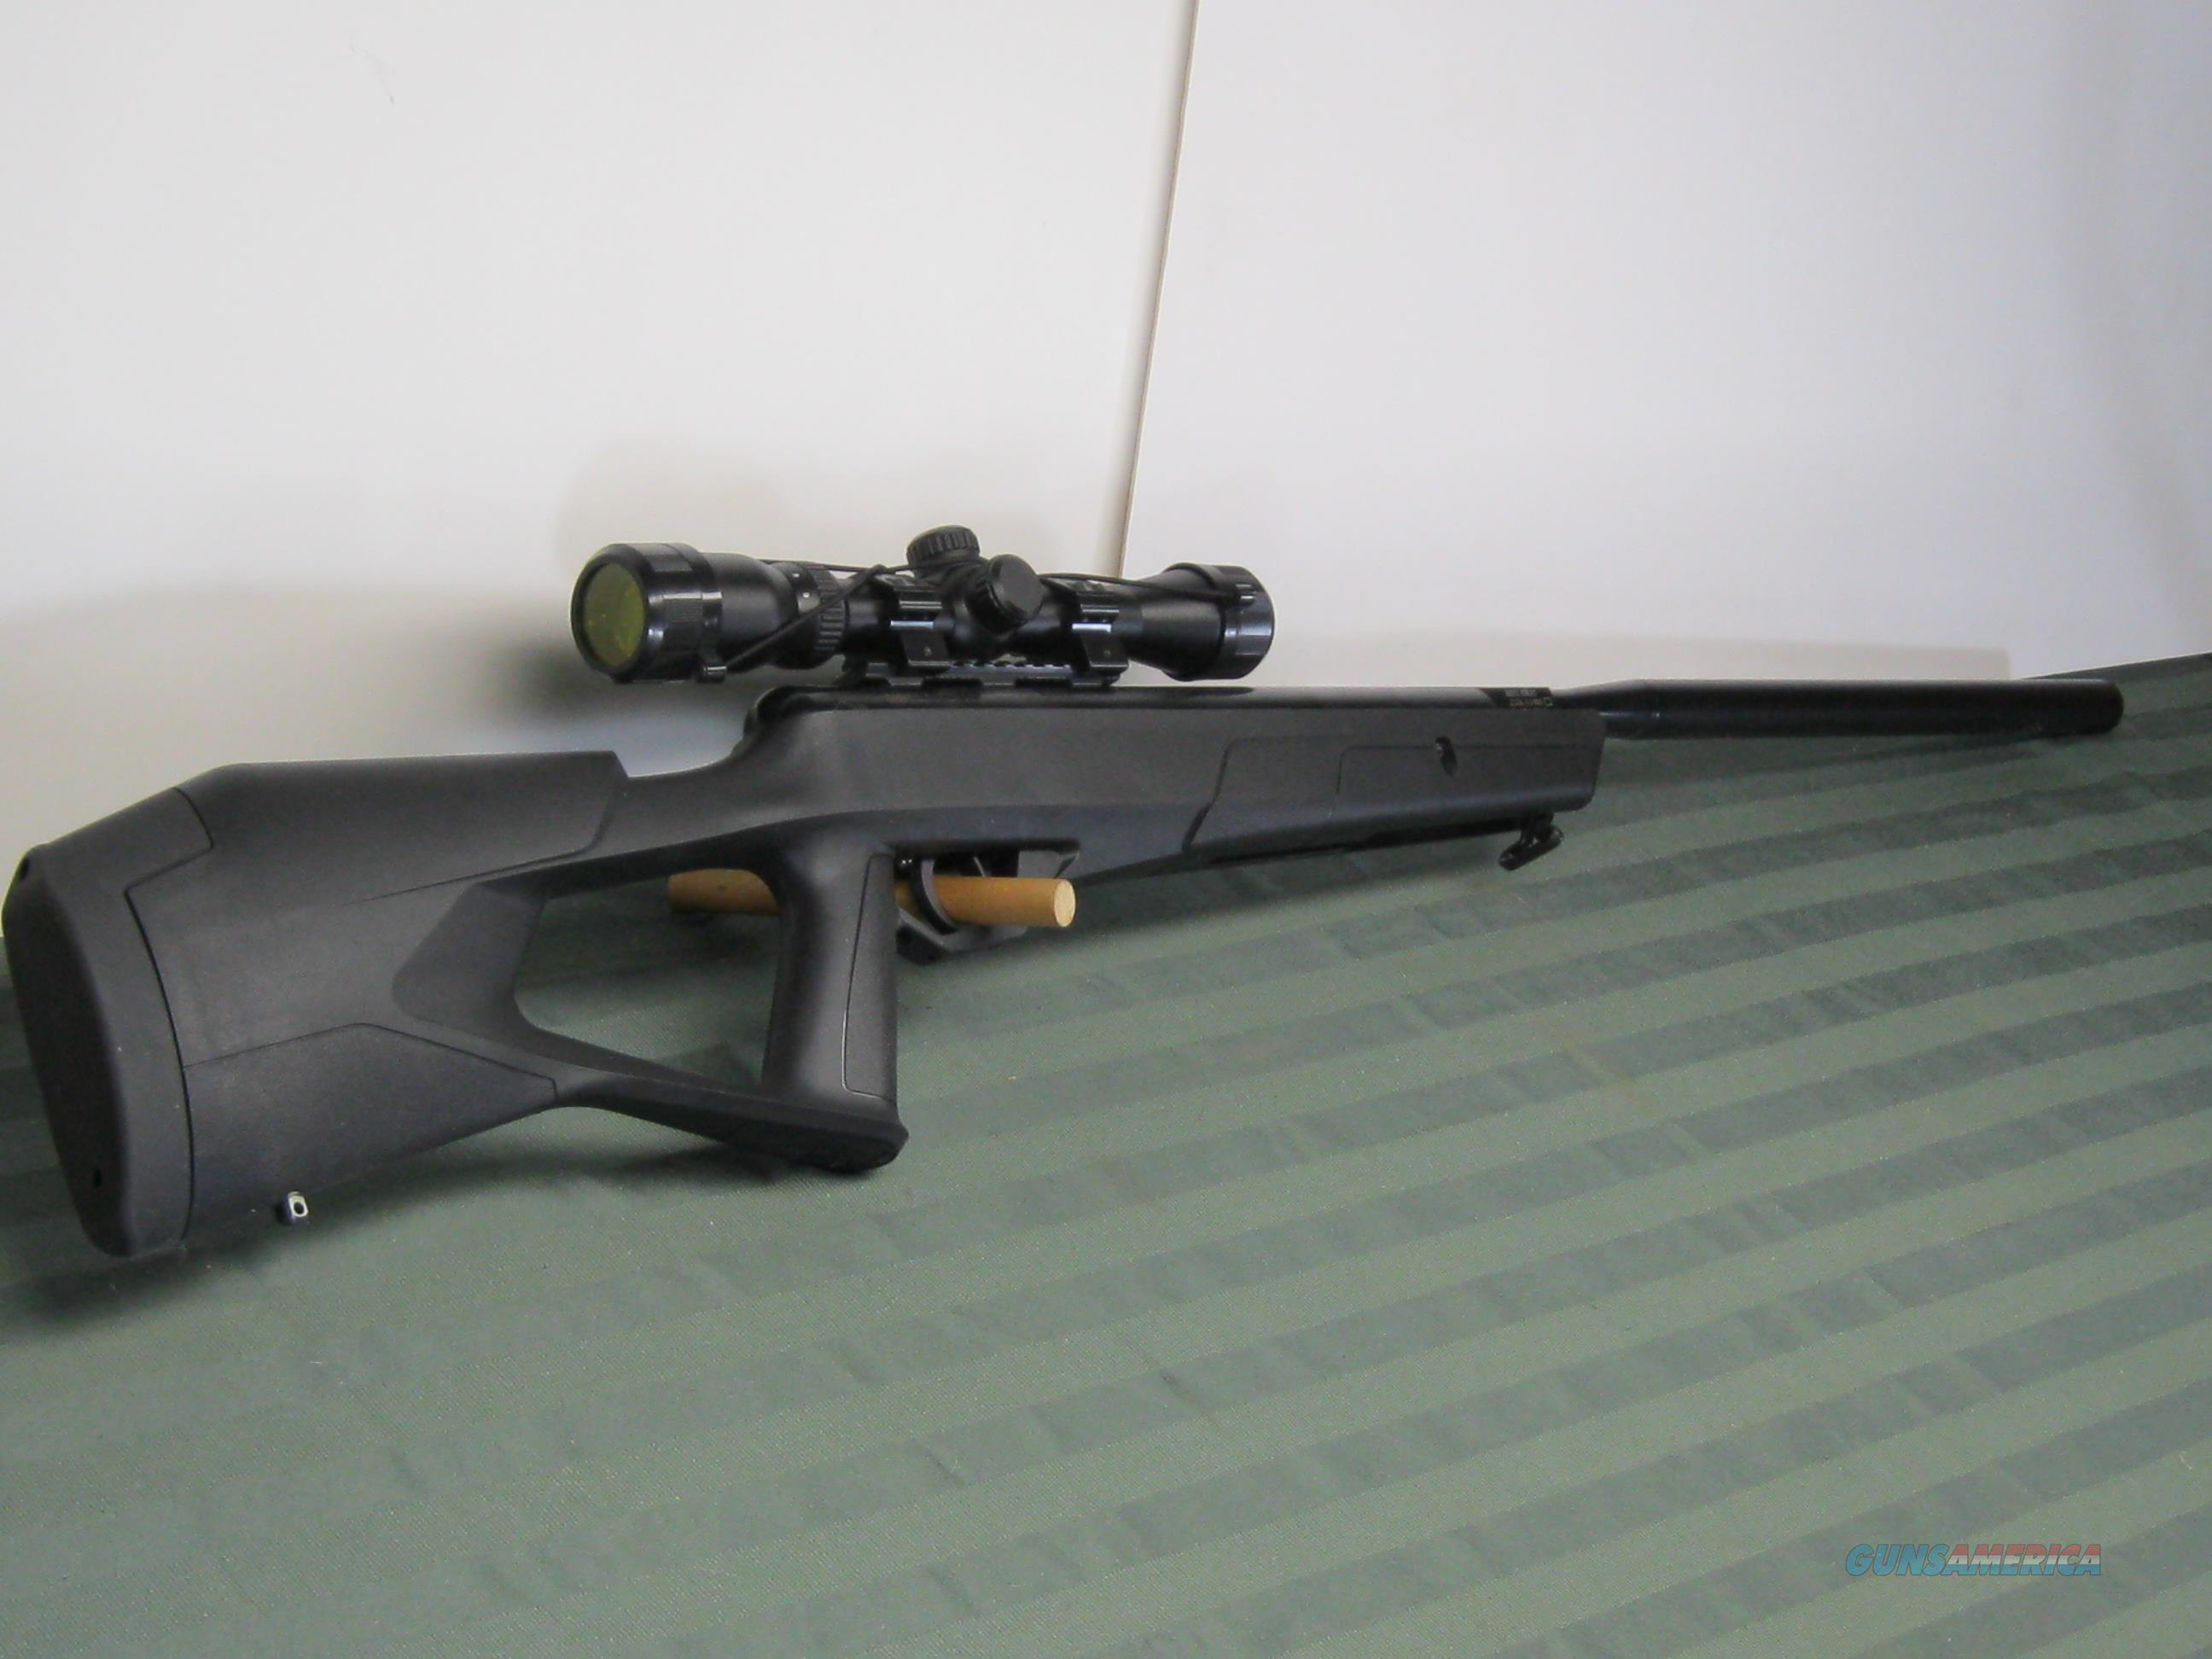 Benjamin Trail air rifle adult high velocity .22 cal.  Non-Guns > Air Rifles - Pistols > Adult High Velocity